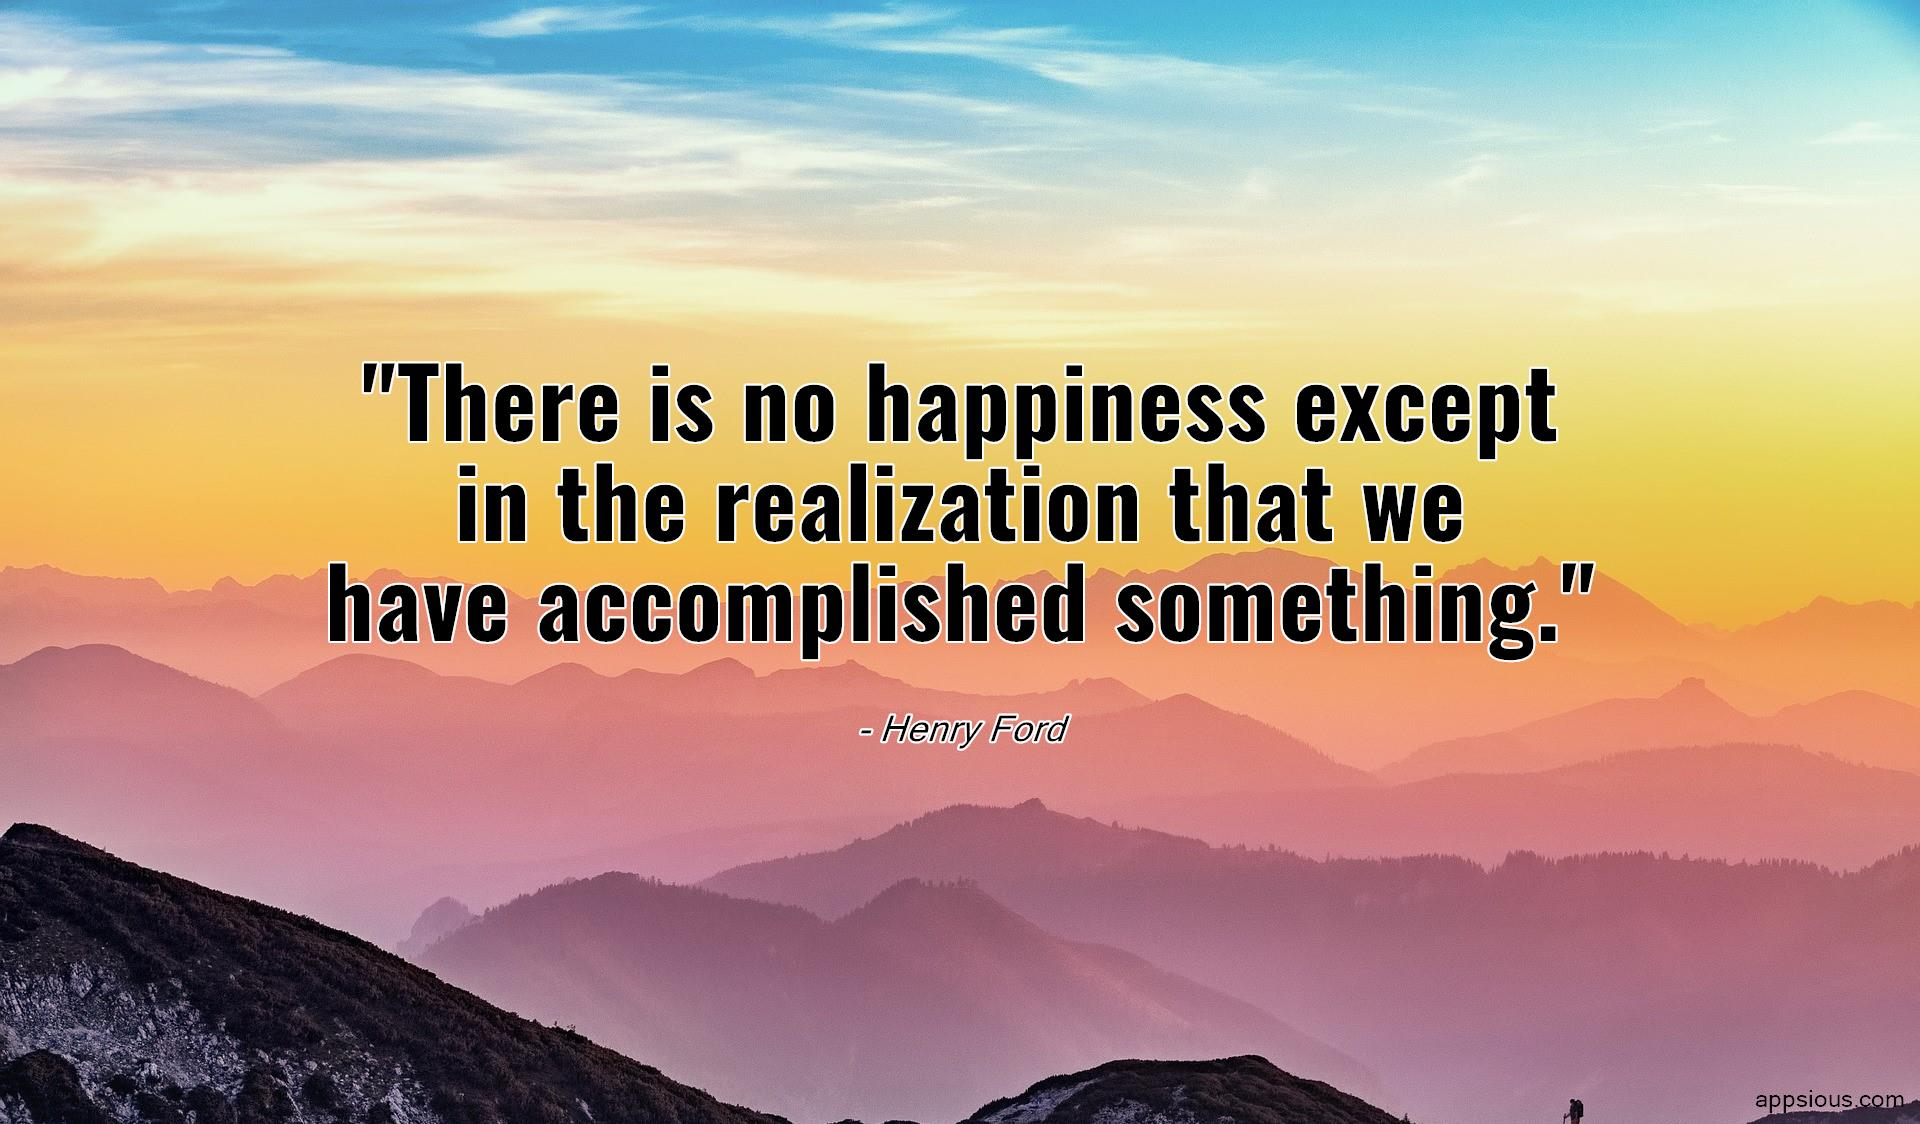 There is no happiness except in the realization that we have accomplished something.